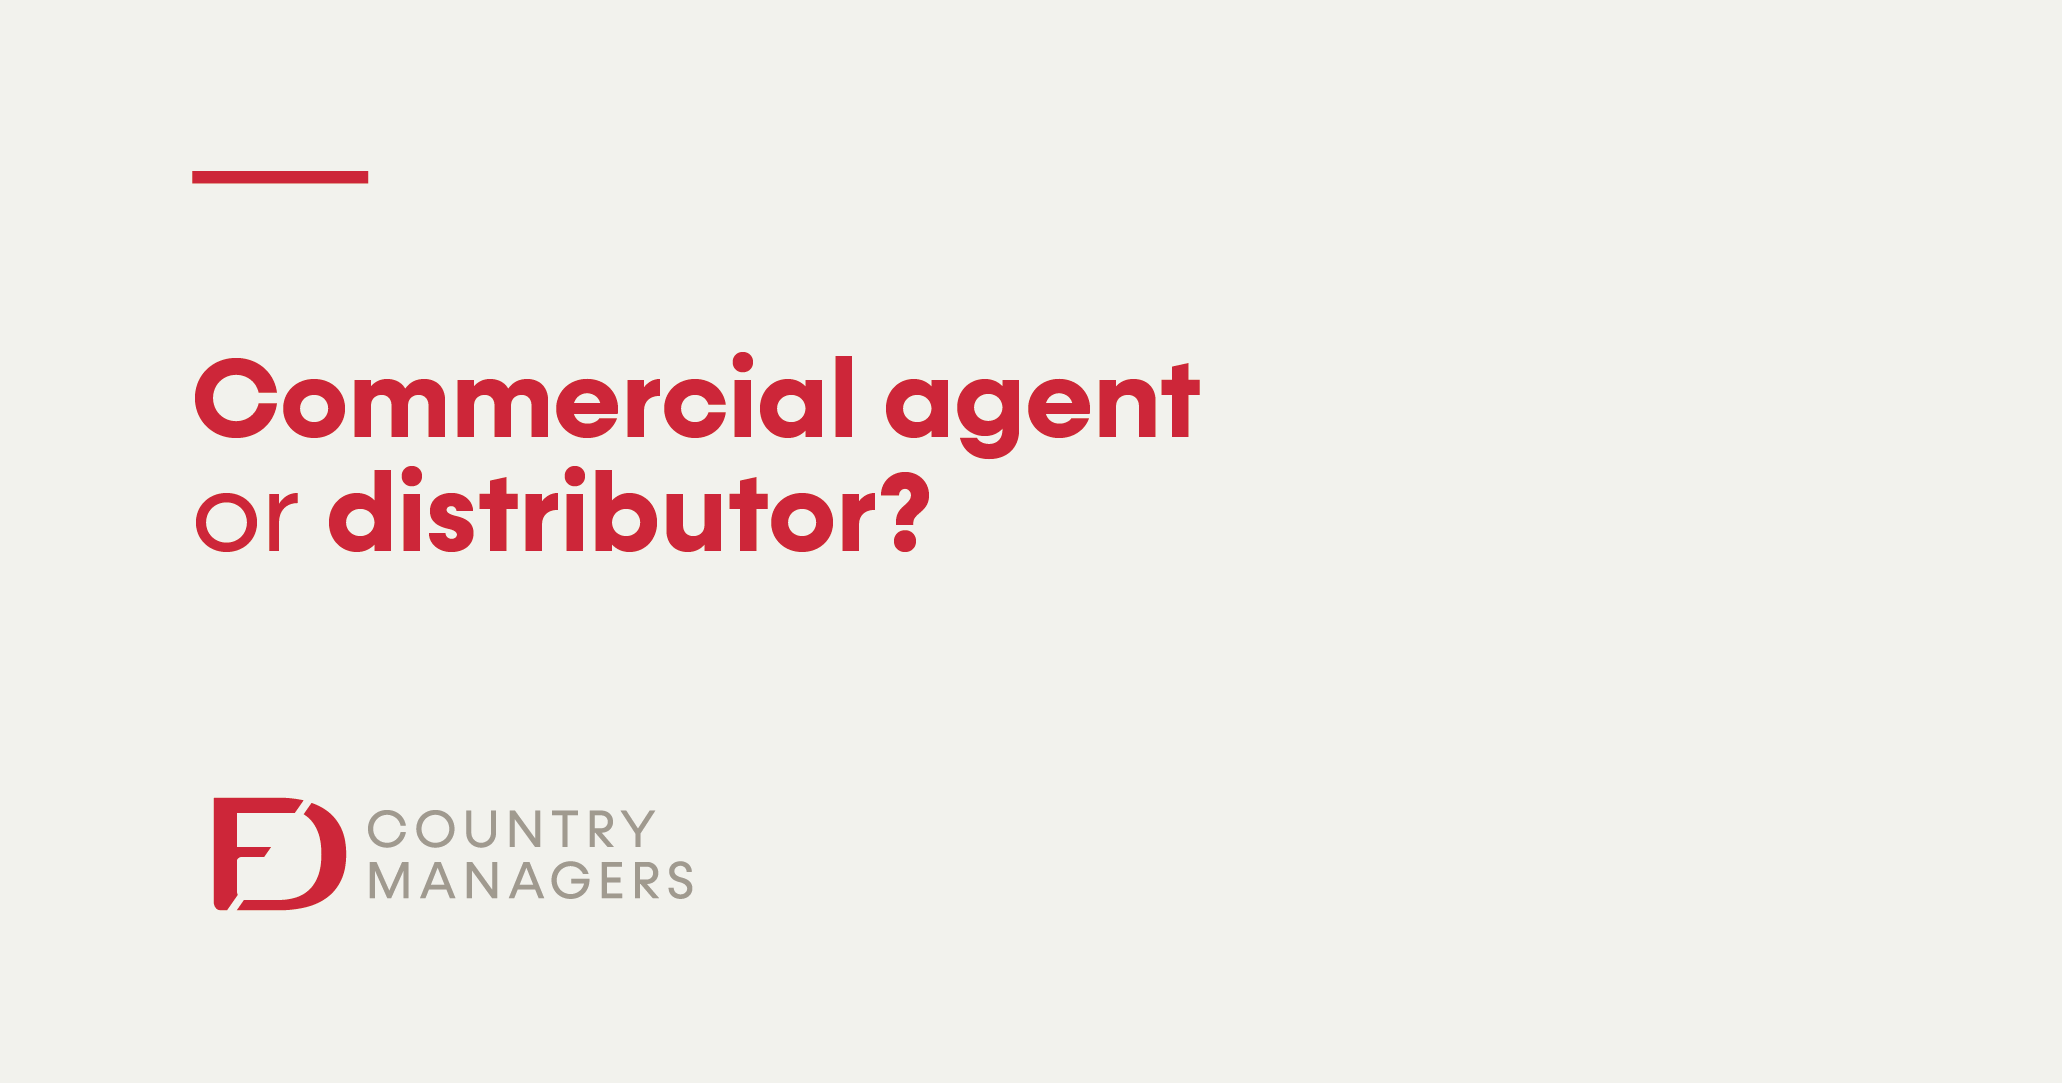 Commercial agent or distributor: Which one is the best for my company?